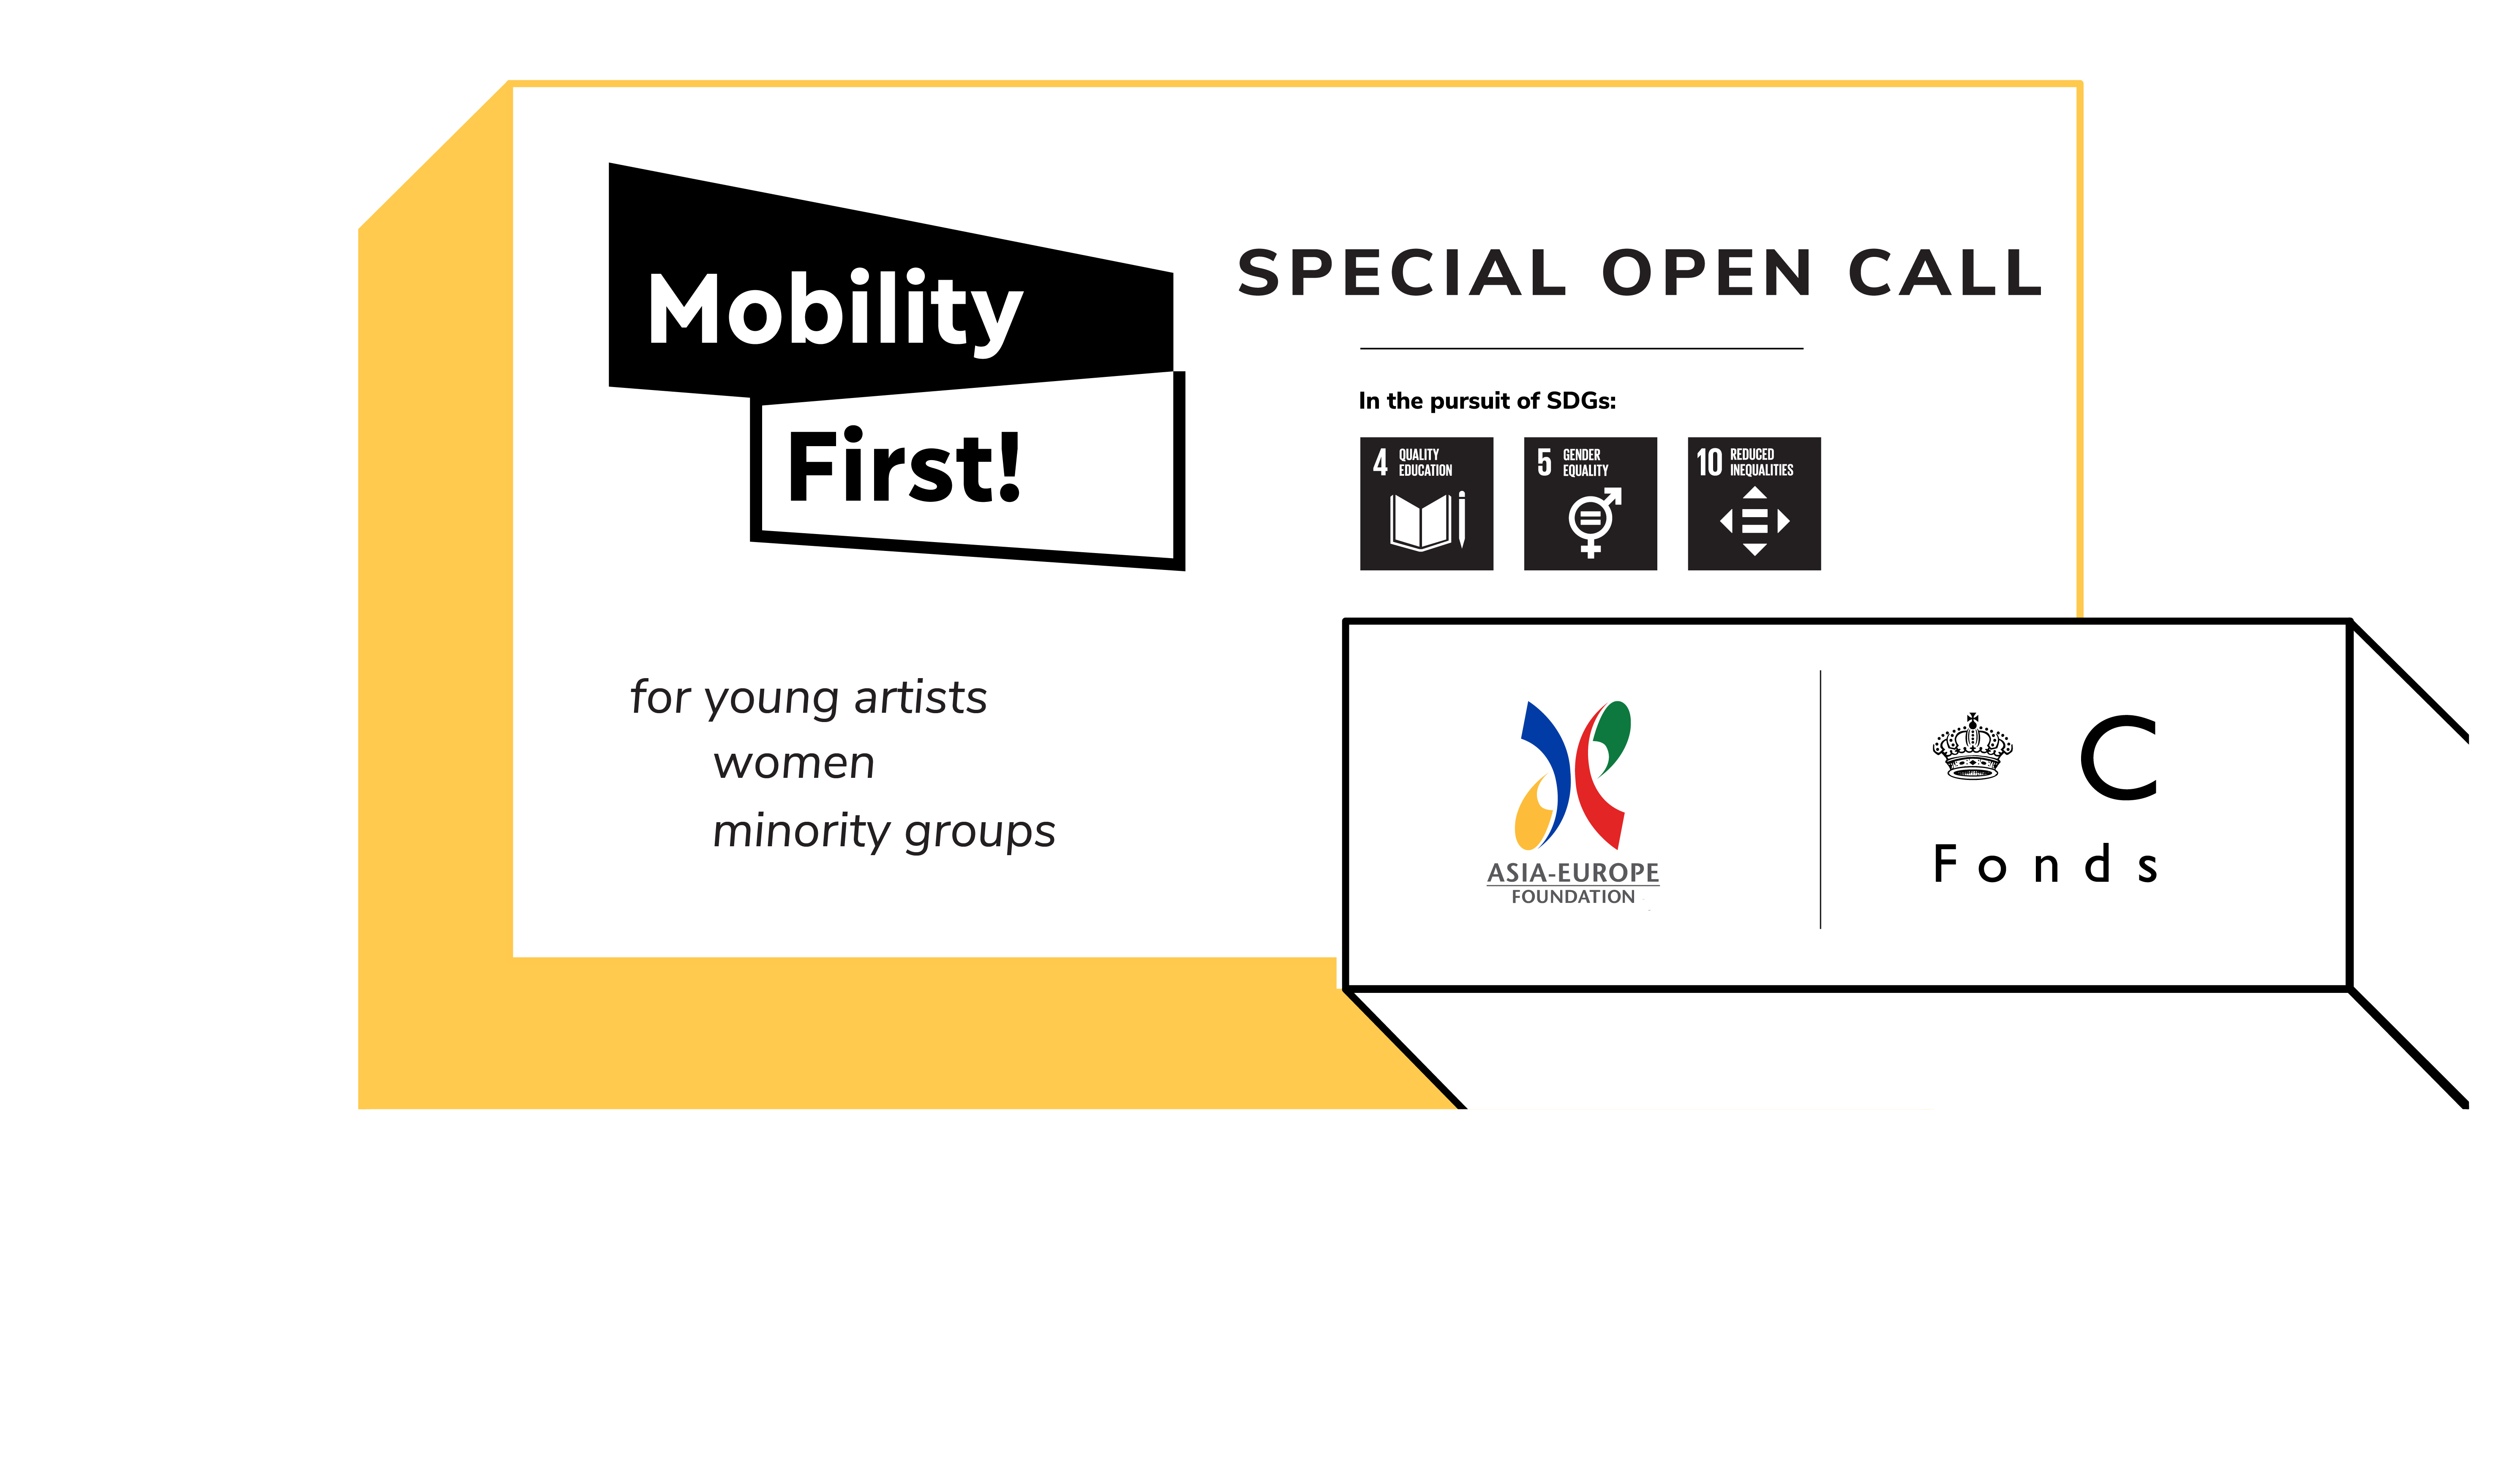 ASEF Mobility Banners PCF 2020